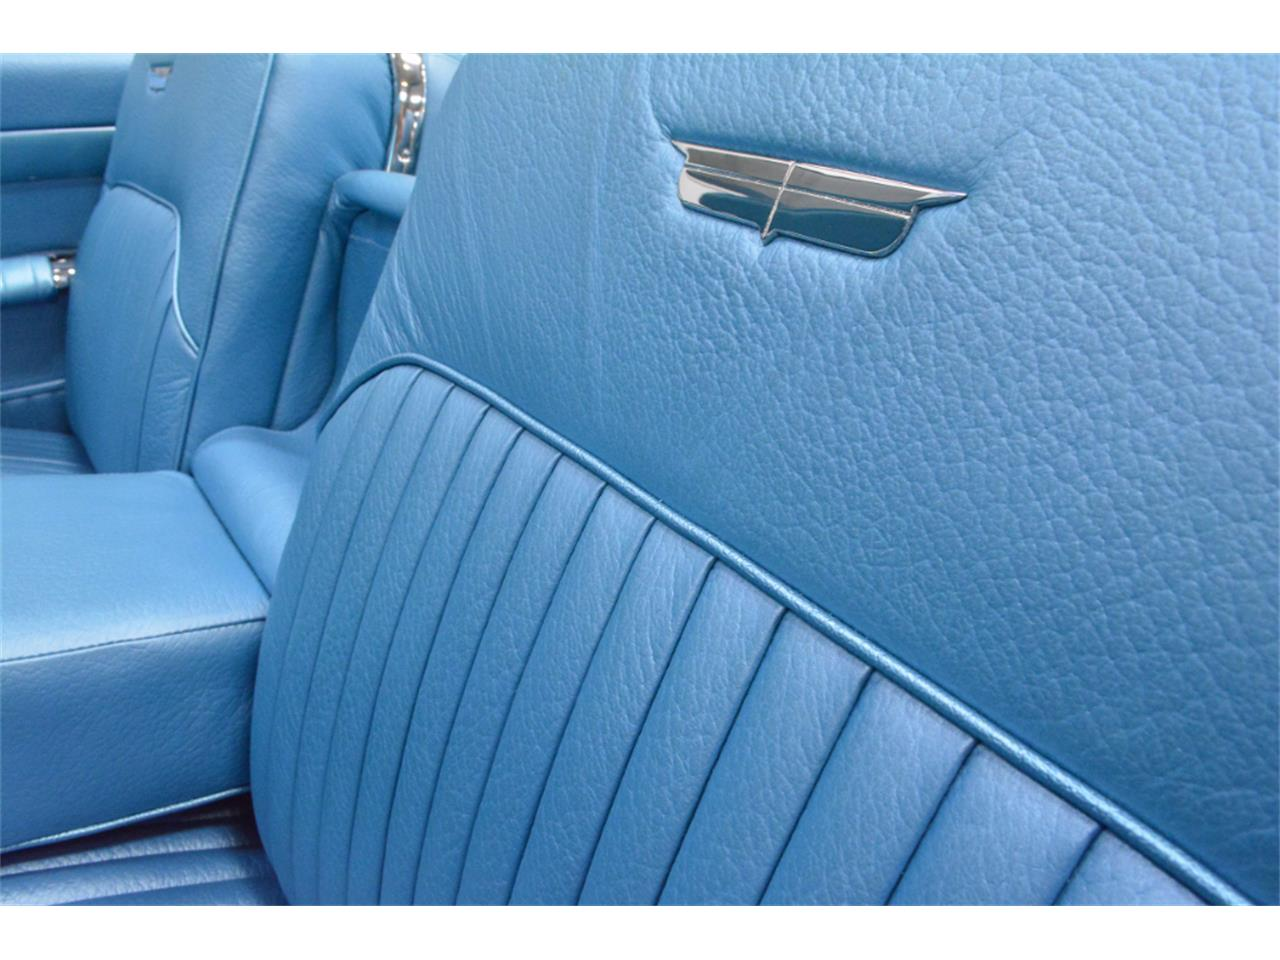 Large Picture of Classic '57 Cadillac Eldorado located in Ohio Offered by John Kufleitner's Galleria - LKLZ